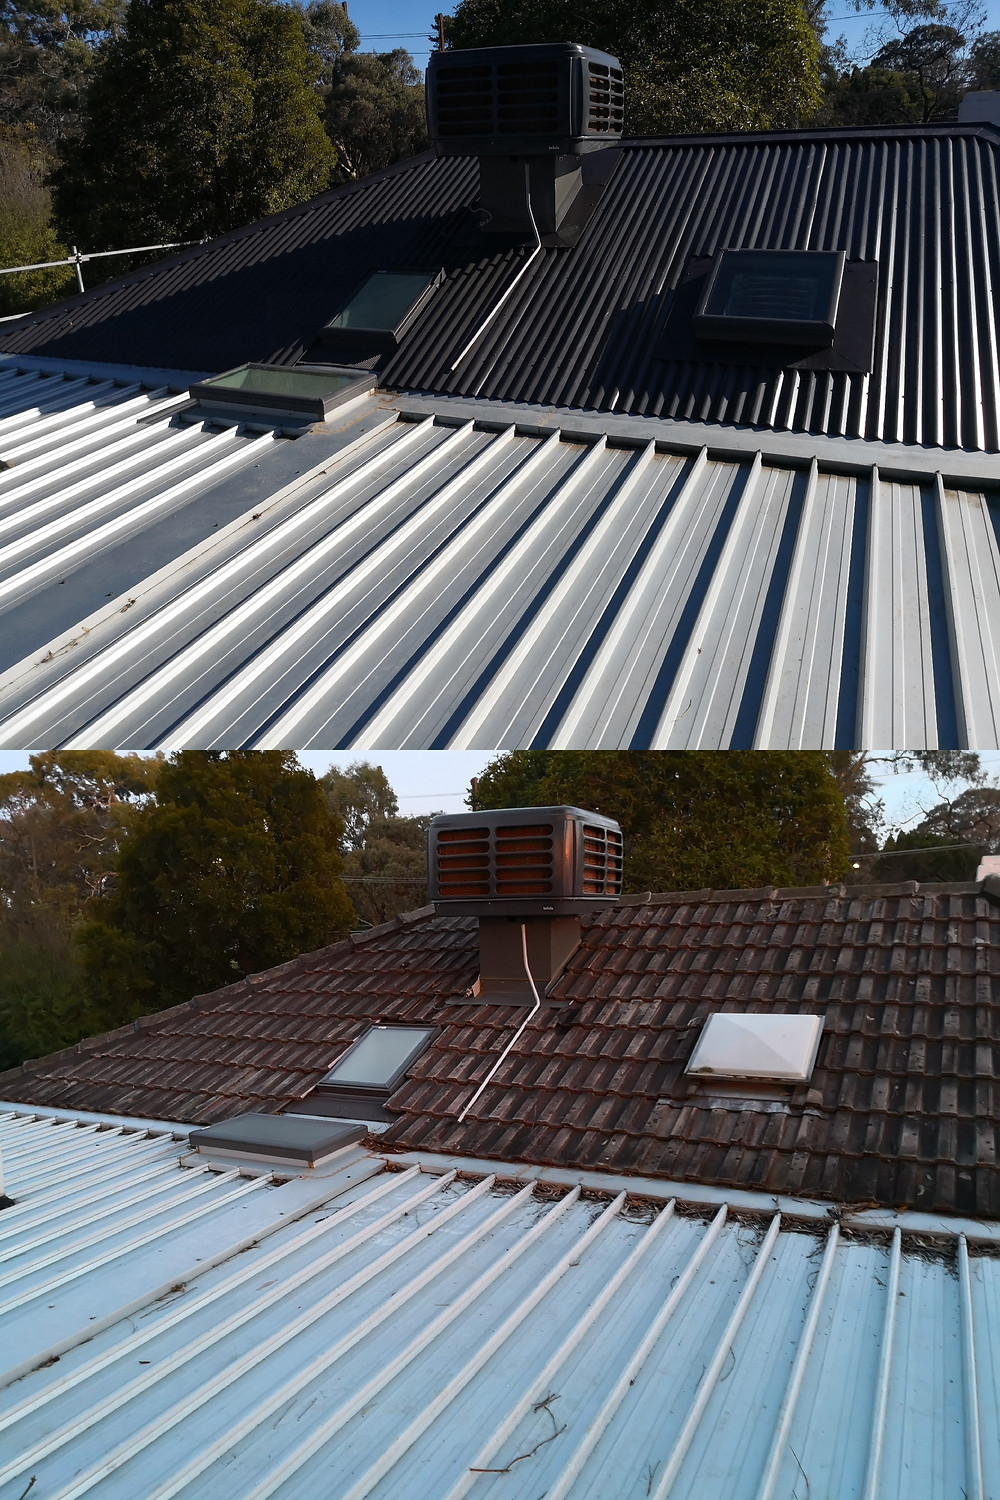 Quality roofing in Watsonia